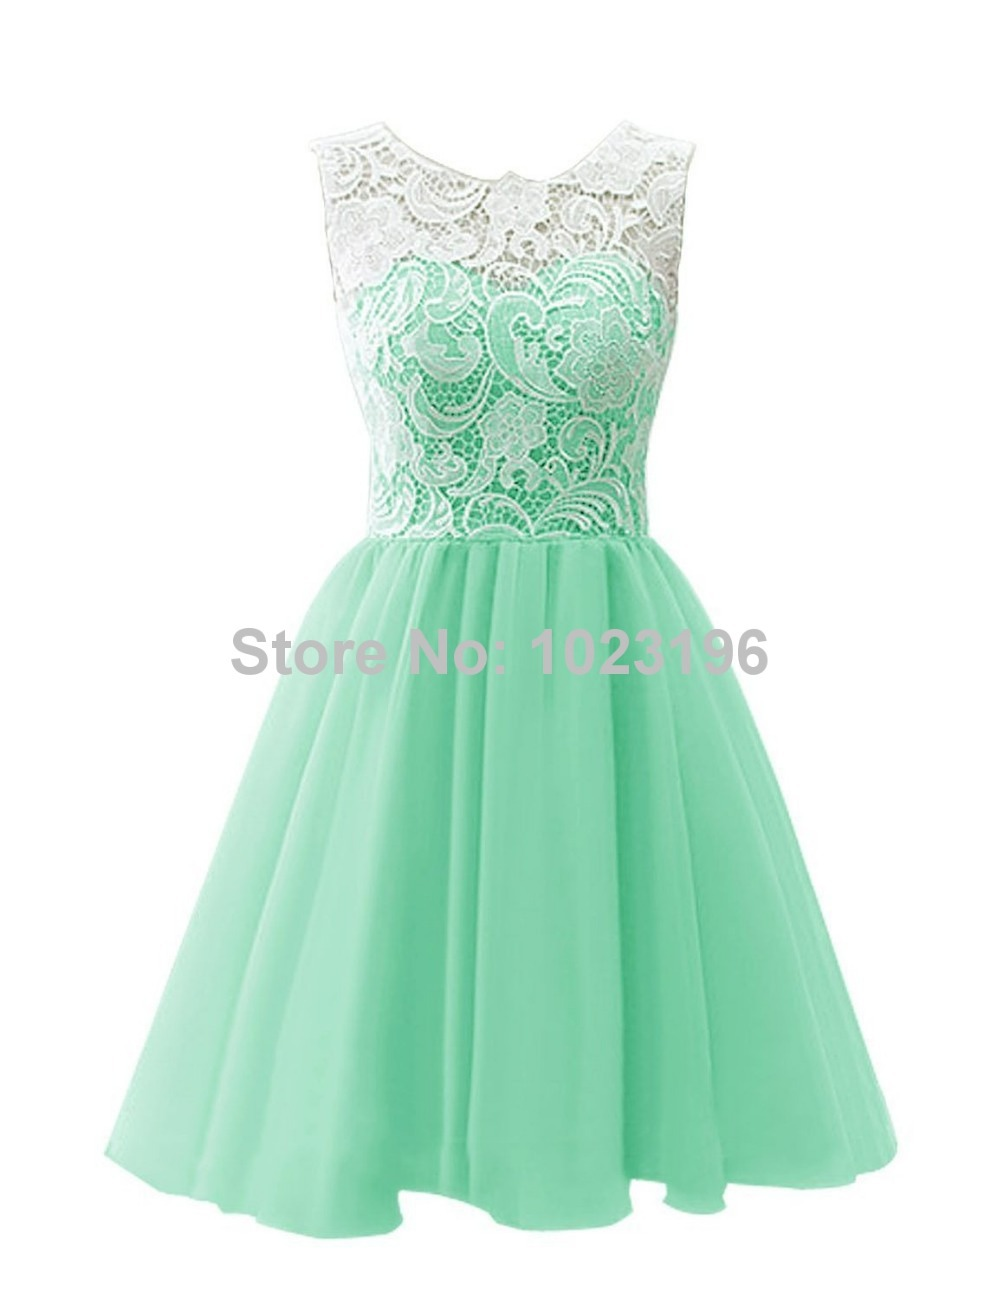 2017 New Short Mint Green Lace Chiffon Prom Dress Zipper With Button ...